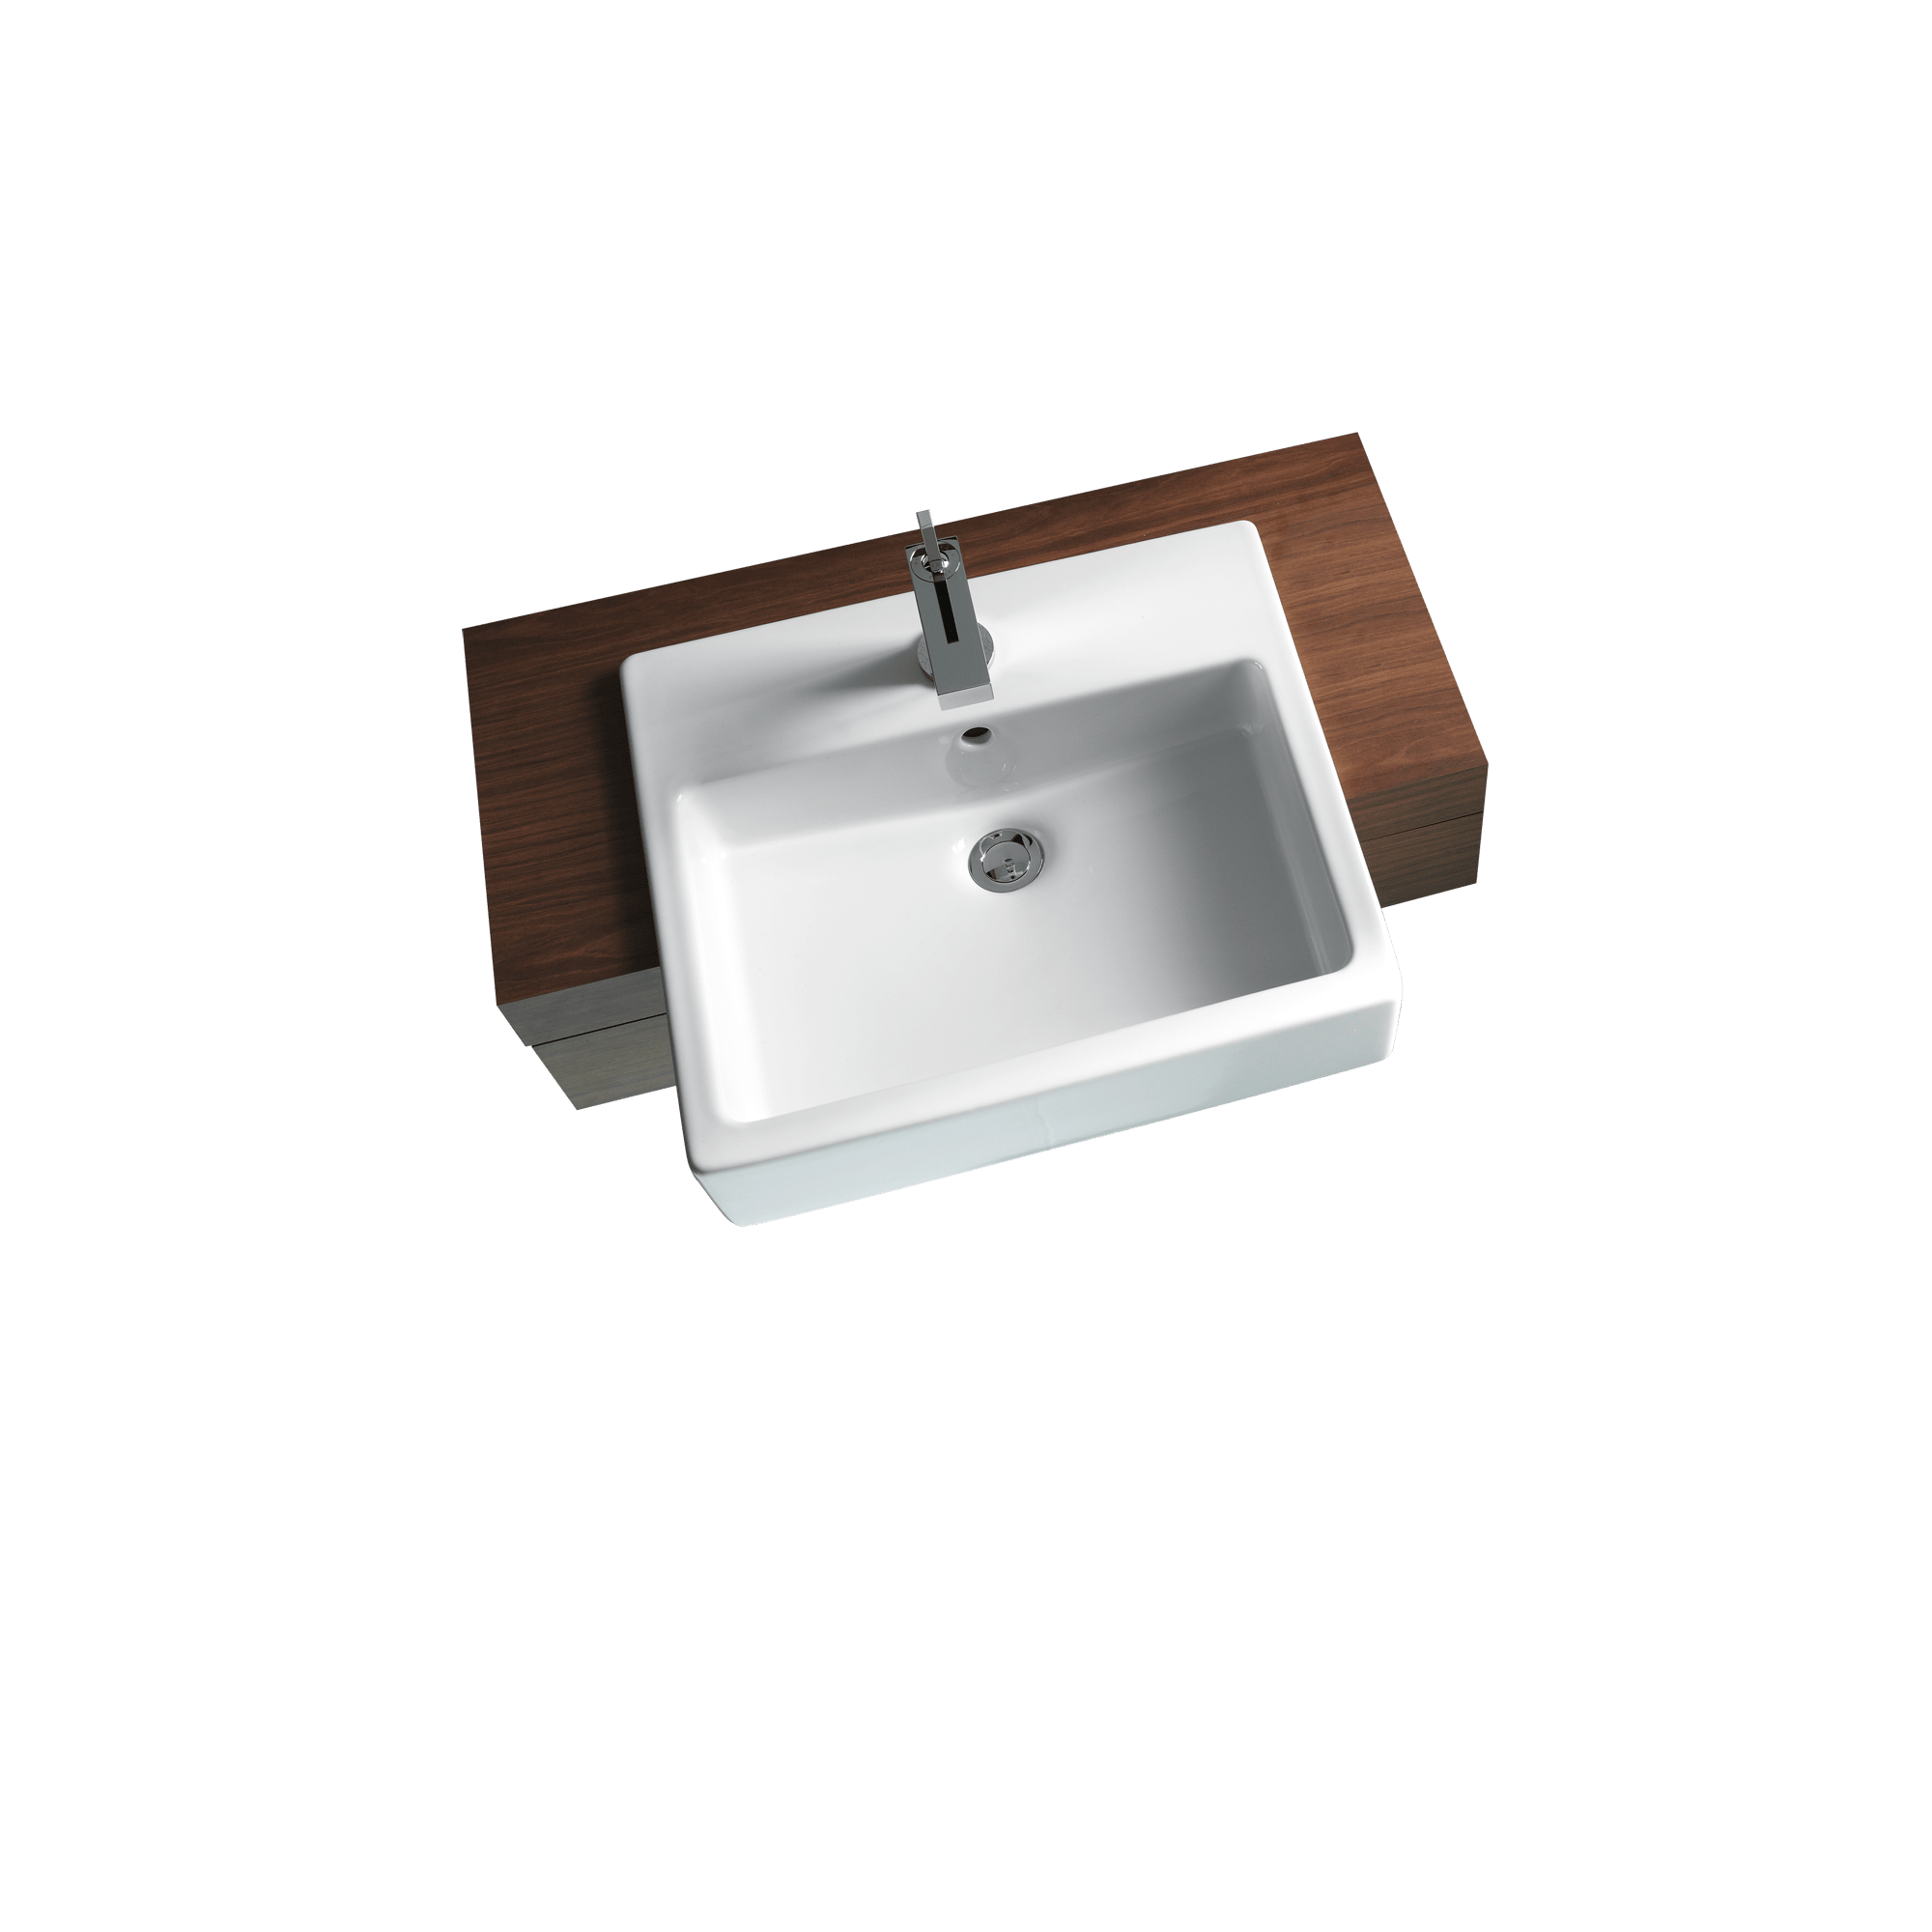 vanity in stark pan taps pin cistern furniture lancaster walls and farrow bacino hickory painted stone karndeen concealed flooring peppercorn aspenn sink with pedestal basin duravit unit purbeck ball